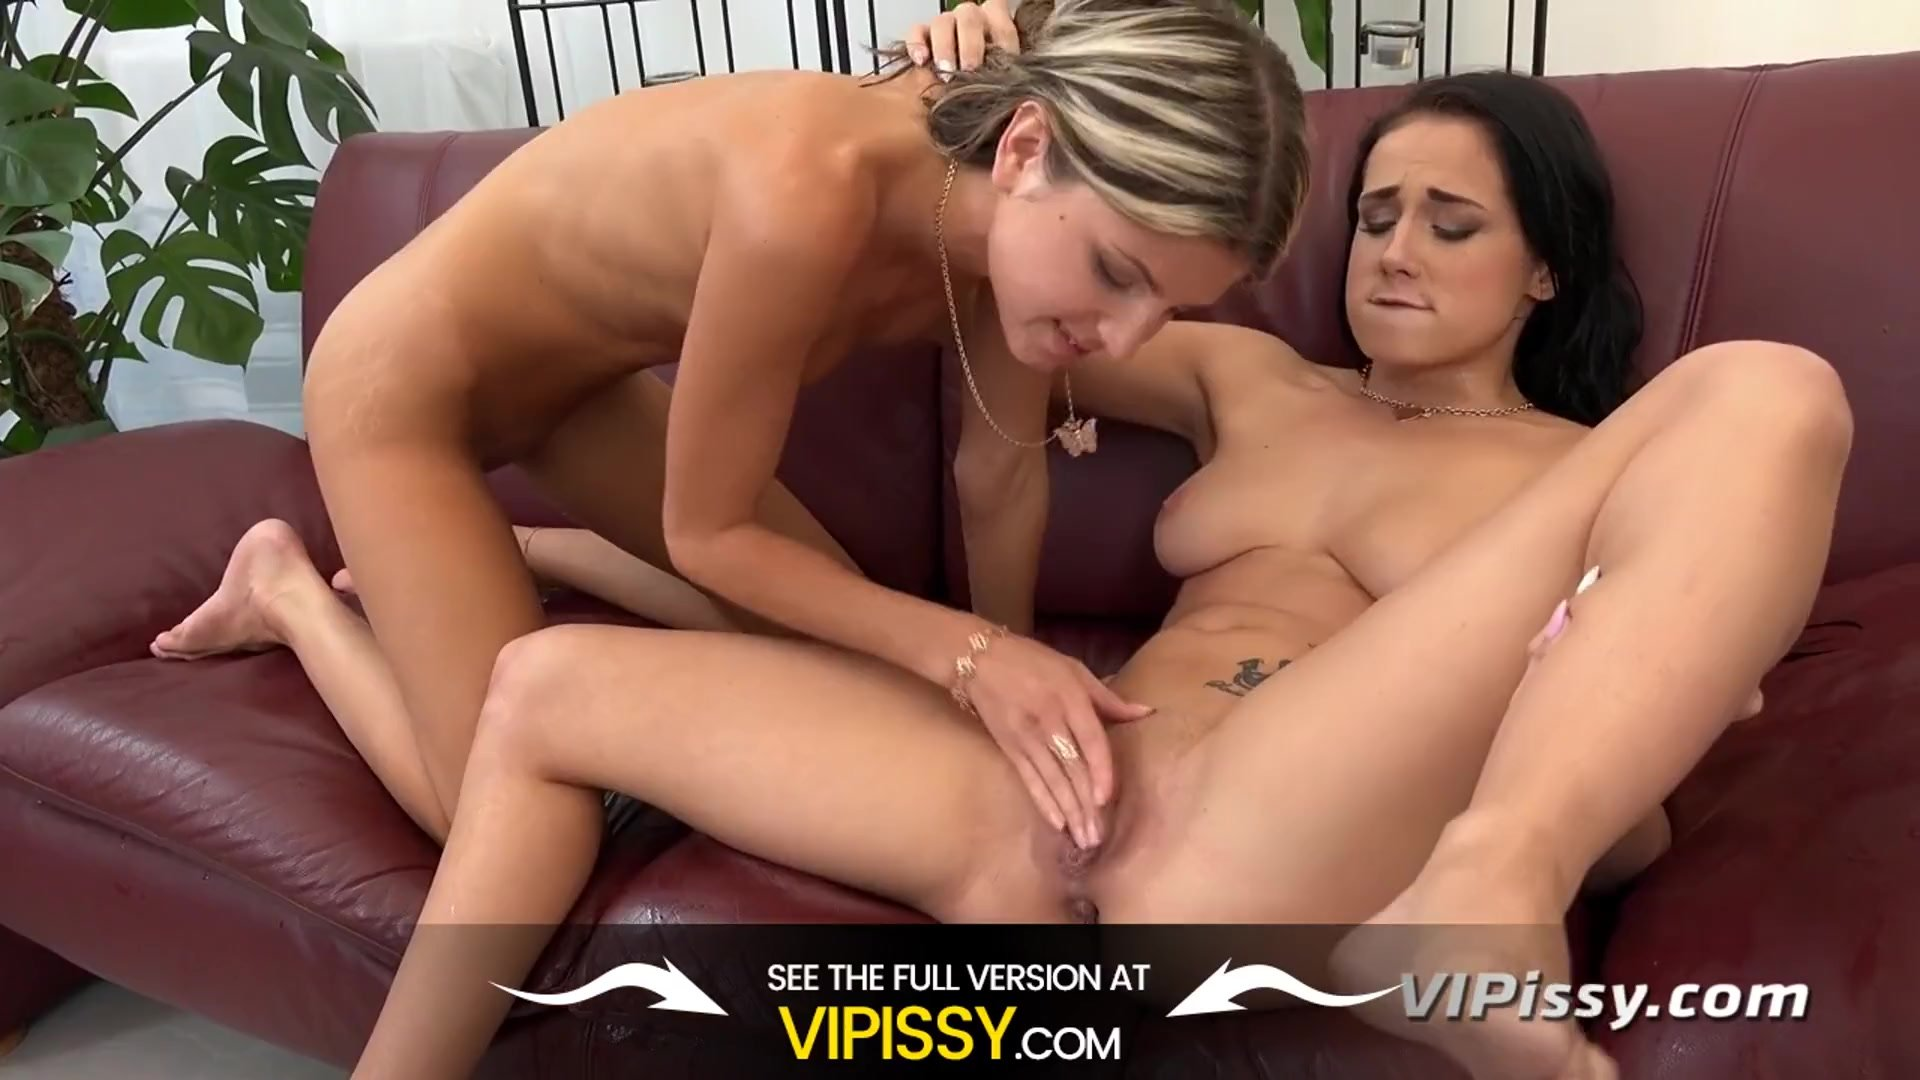 Vipissy - Stunning lesbians cover each other in piss during lesbian sex